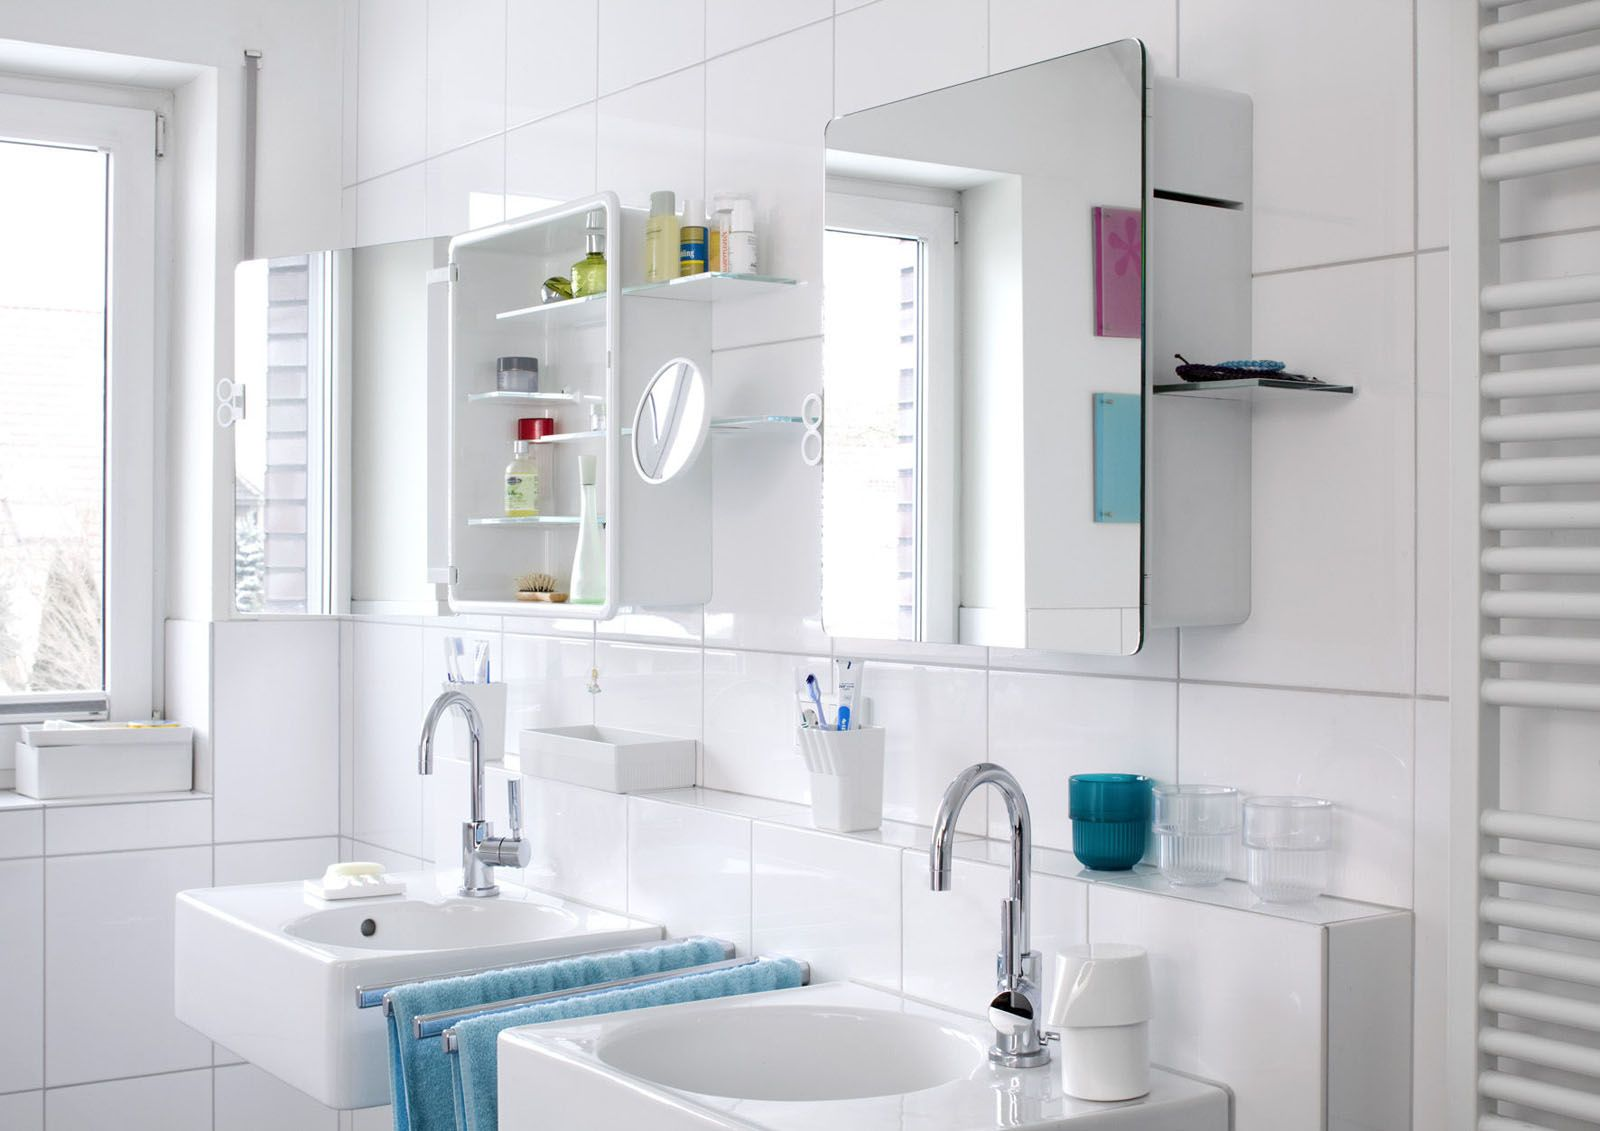 Bathroom: Two Small Bathroom Mirror Cabinet With Illuminated Lights ...